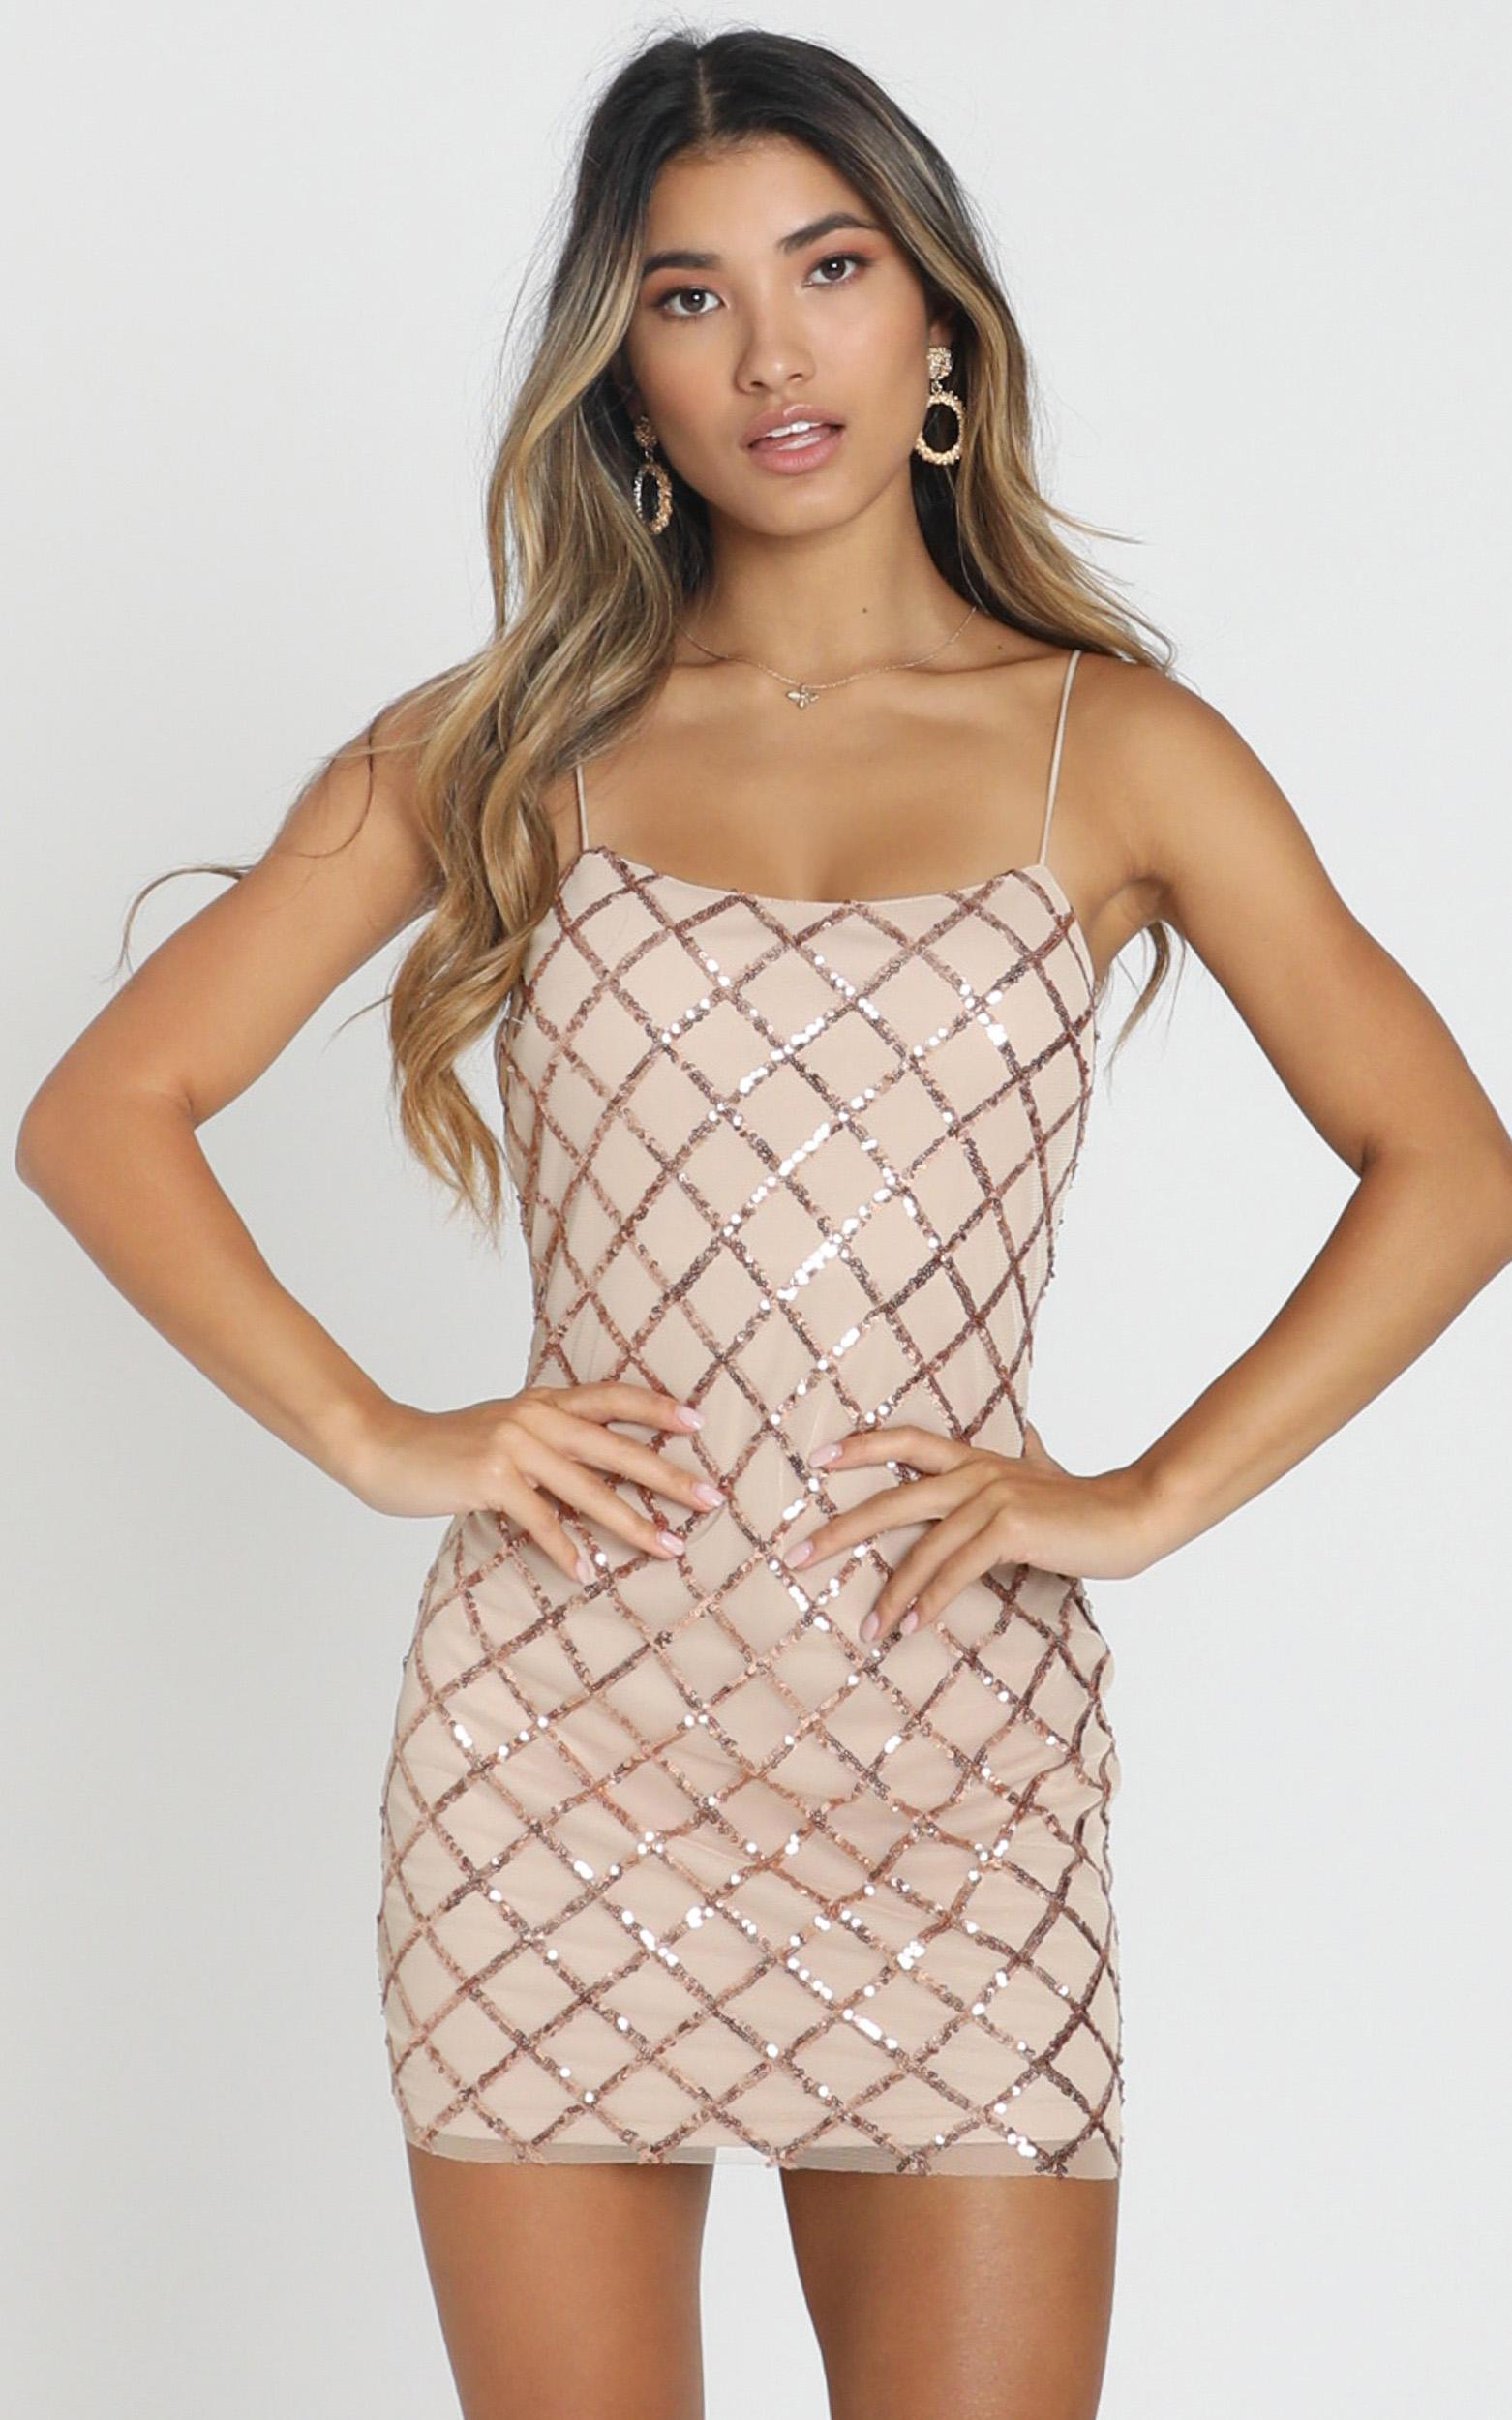 Rhythm Of Love Dress In Rose Gold Sequin - 16 (XXL), Rose Gold, hi-res image number null